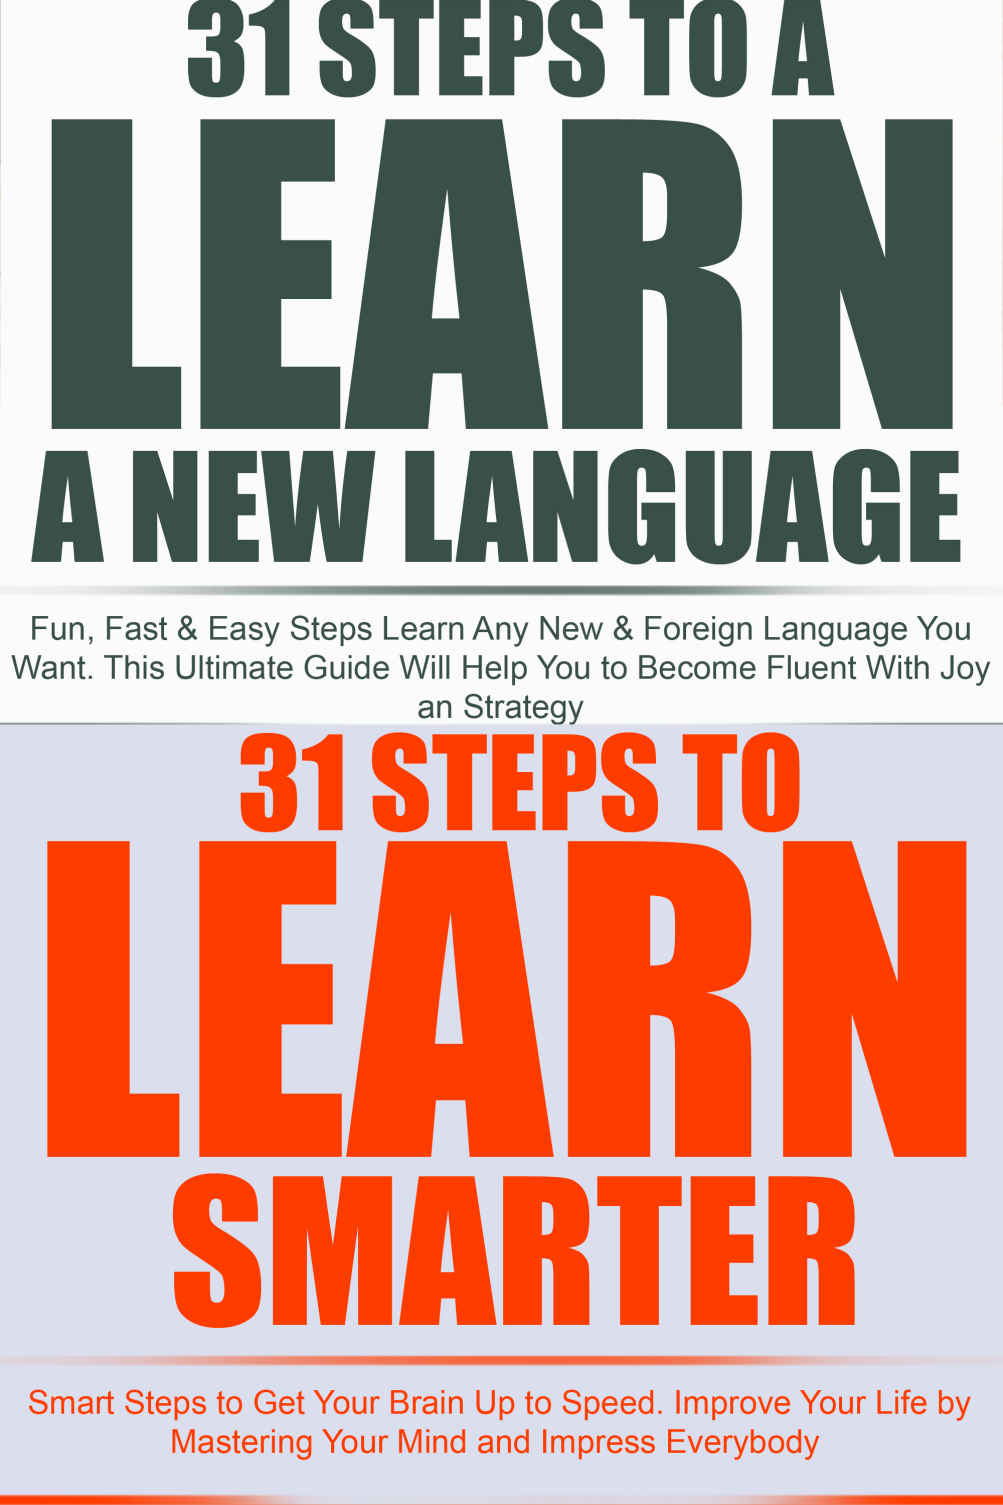 Philip Vang - 31 steps learn a new language free download